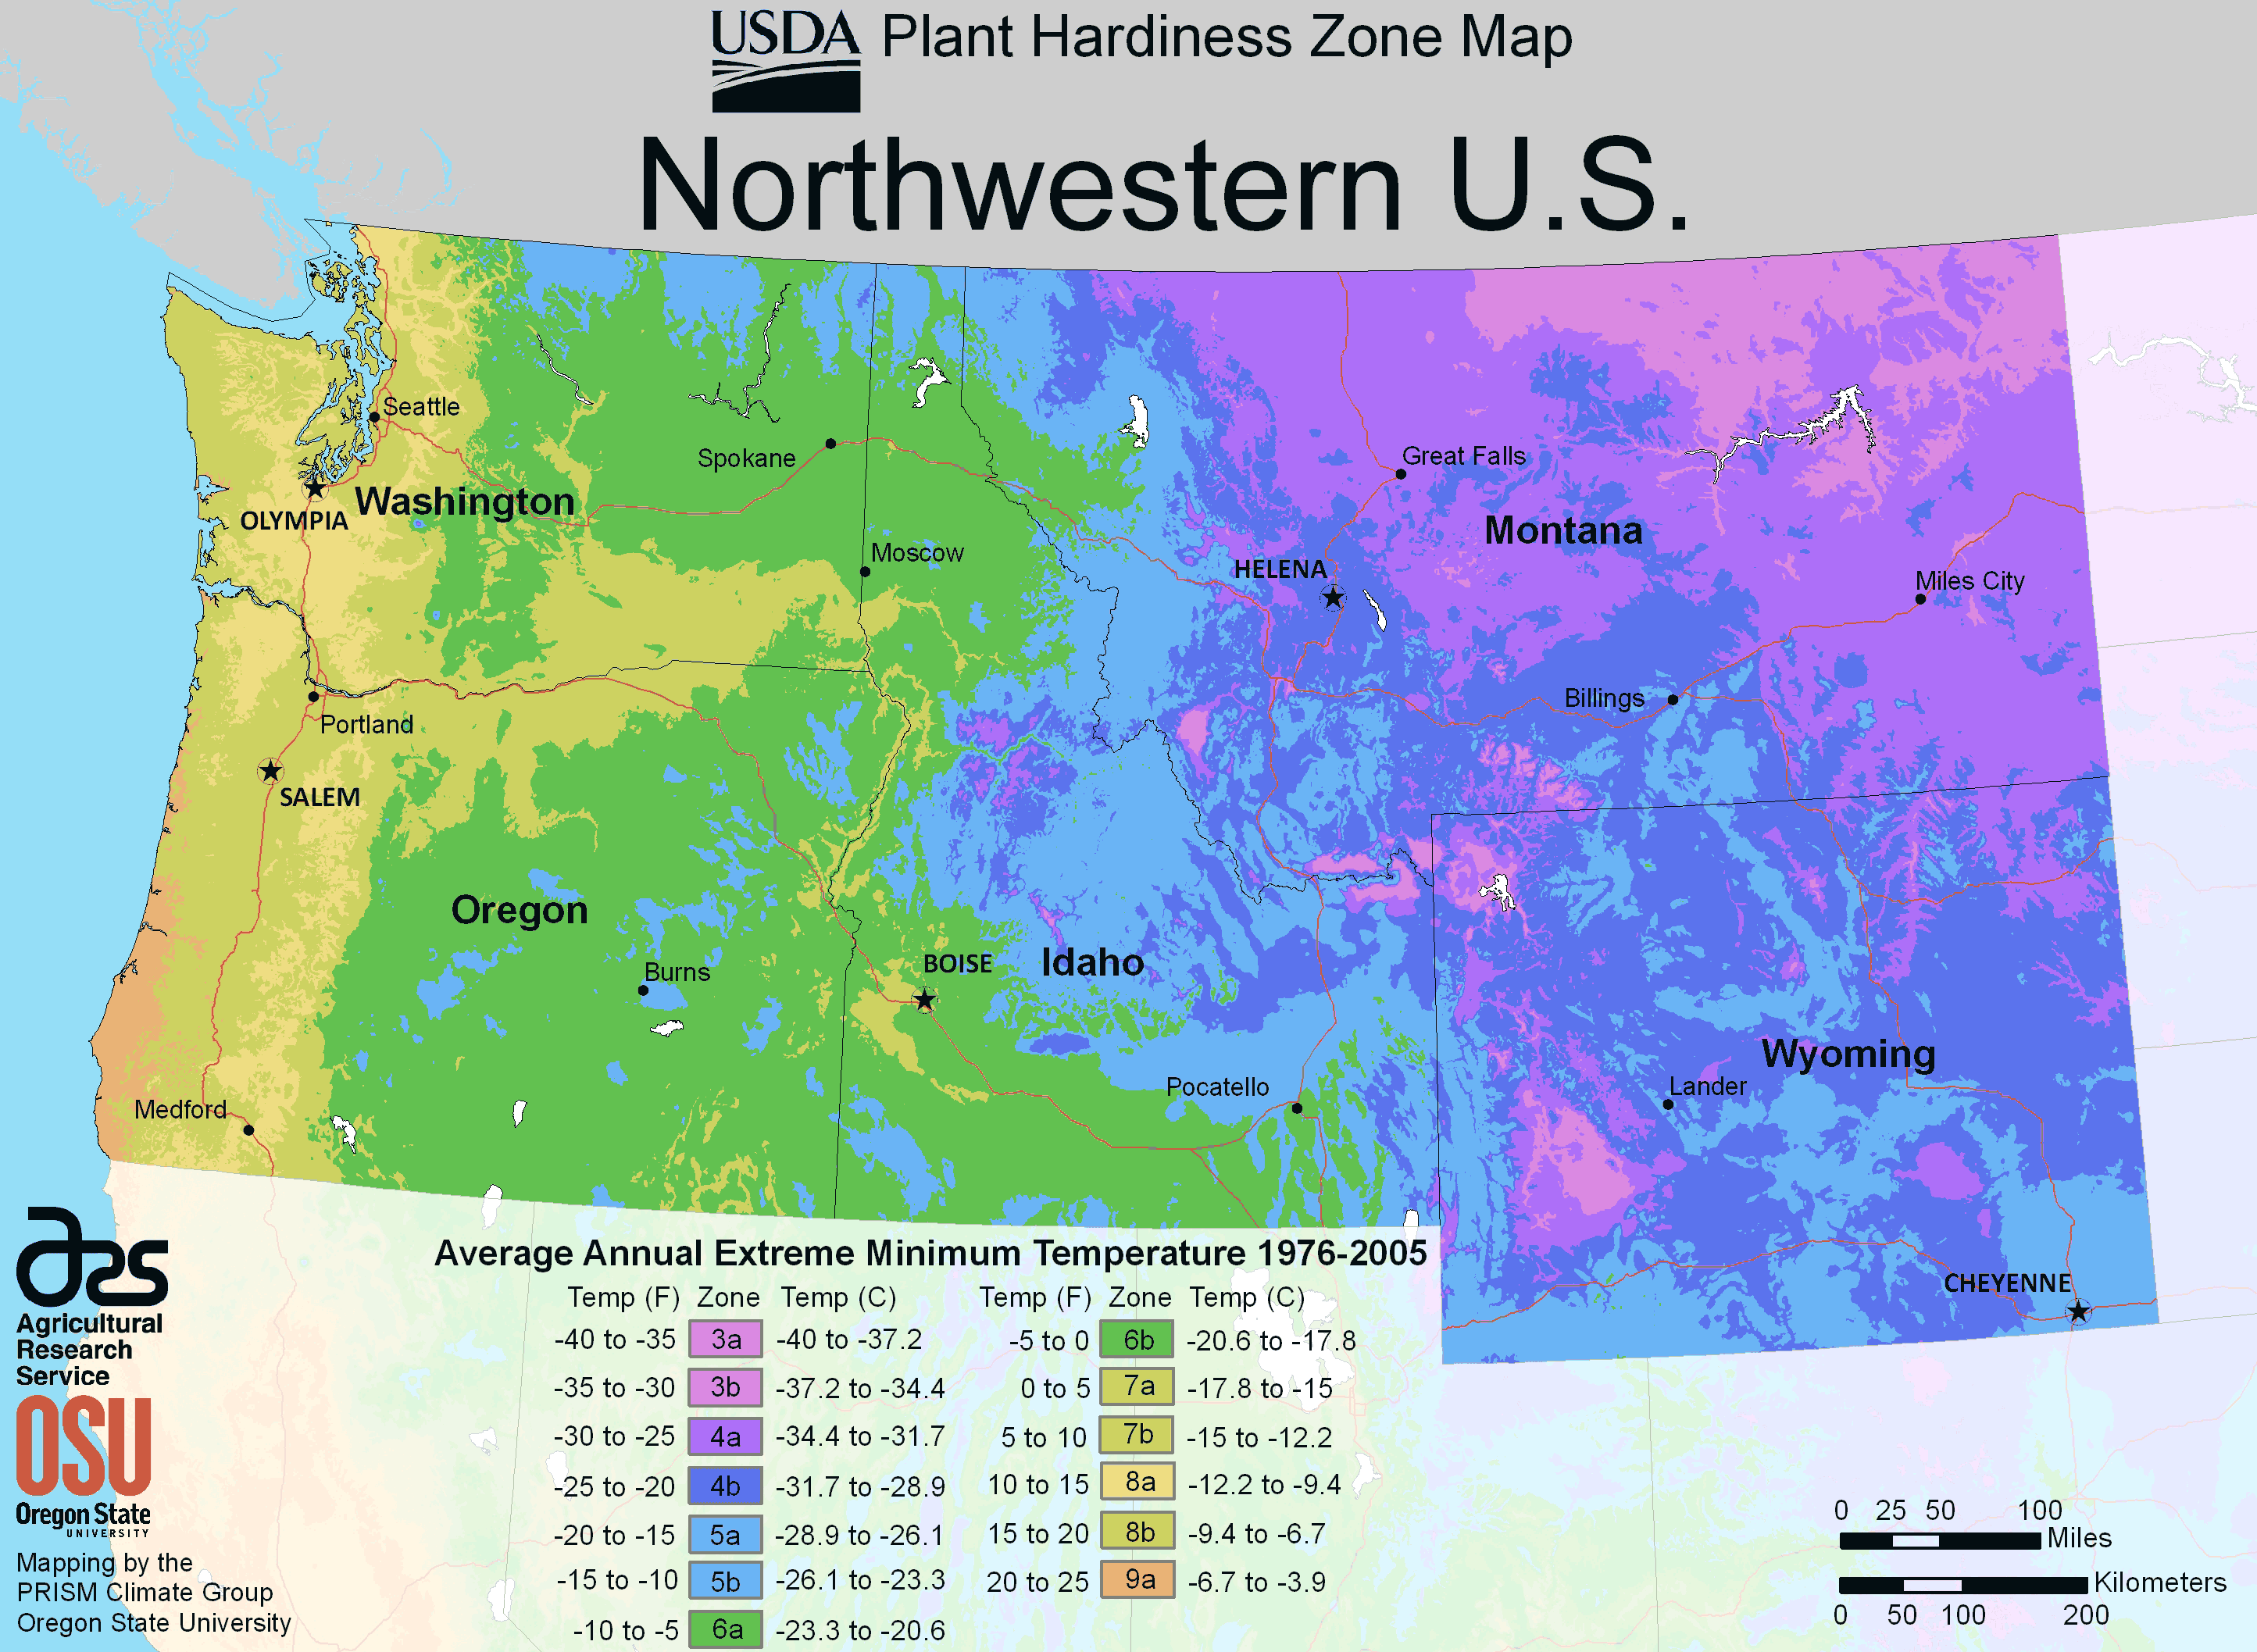 North West Us Plant Hardiness Zone Map Mapsofnet - Map of west us states